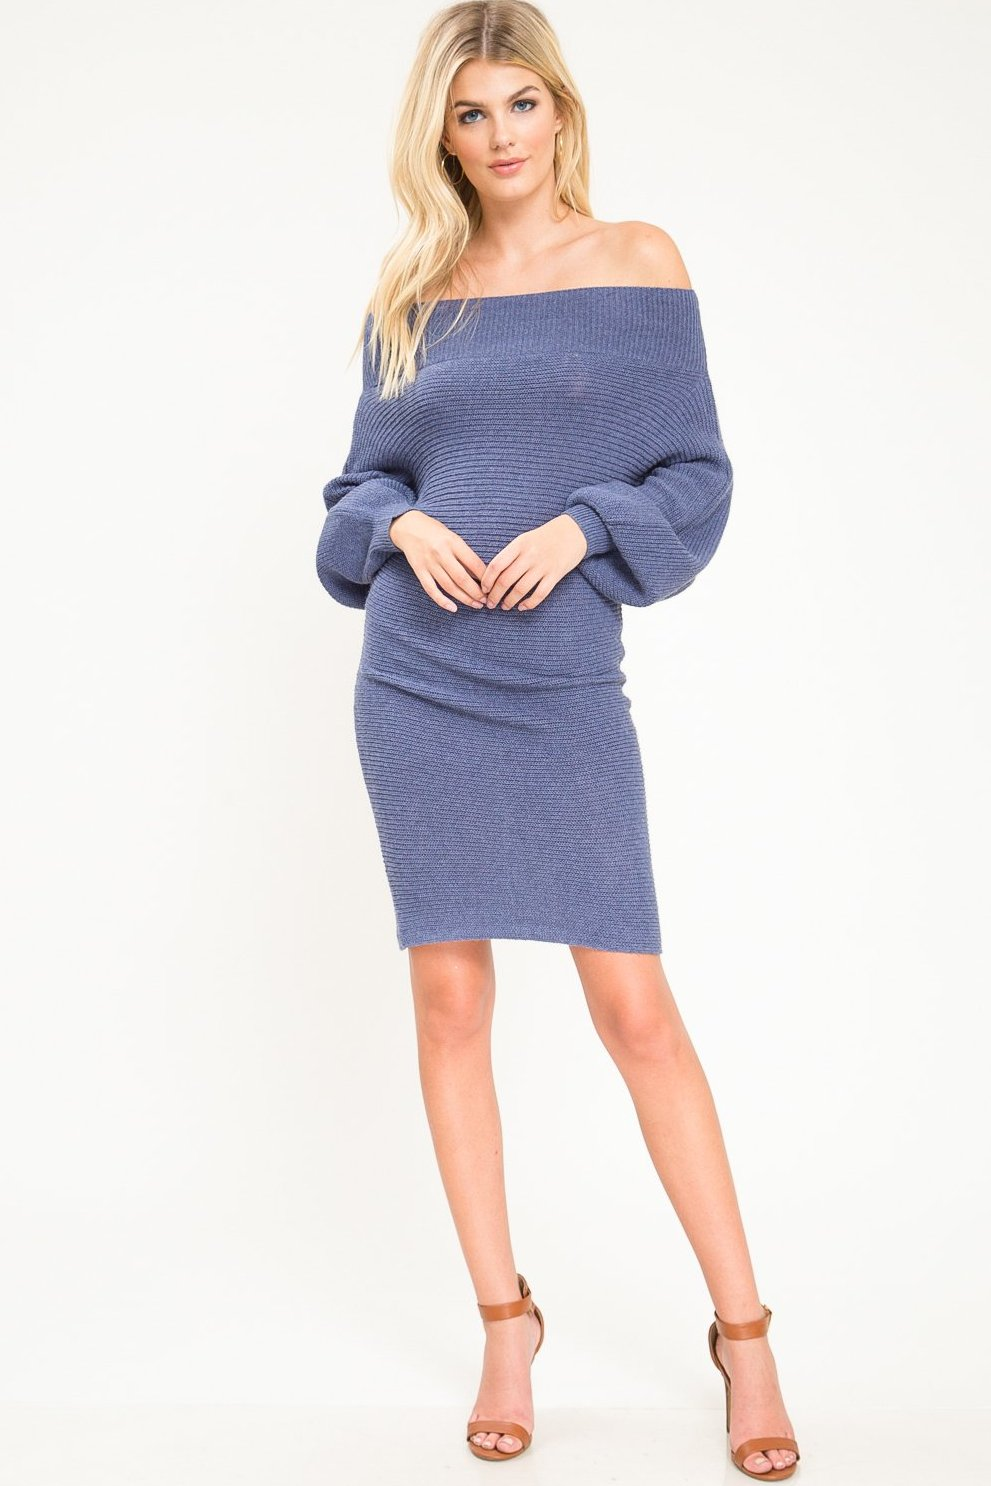 Marjorie Batwing Sweater Dress - Geegeebae